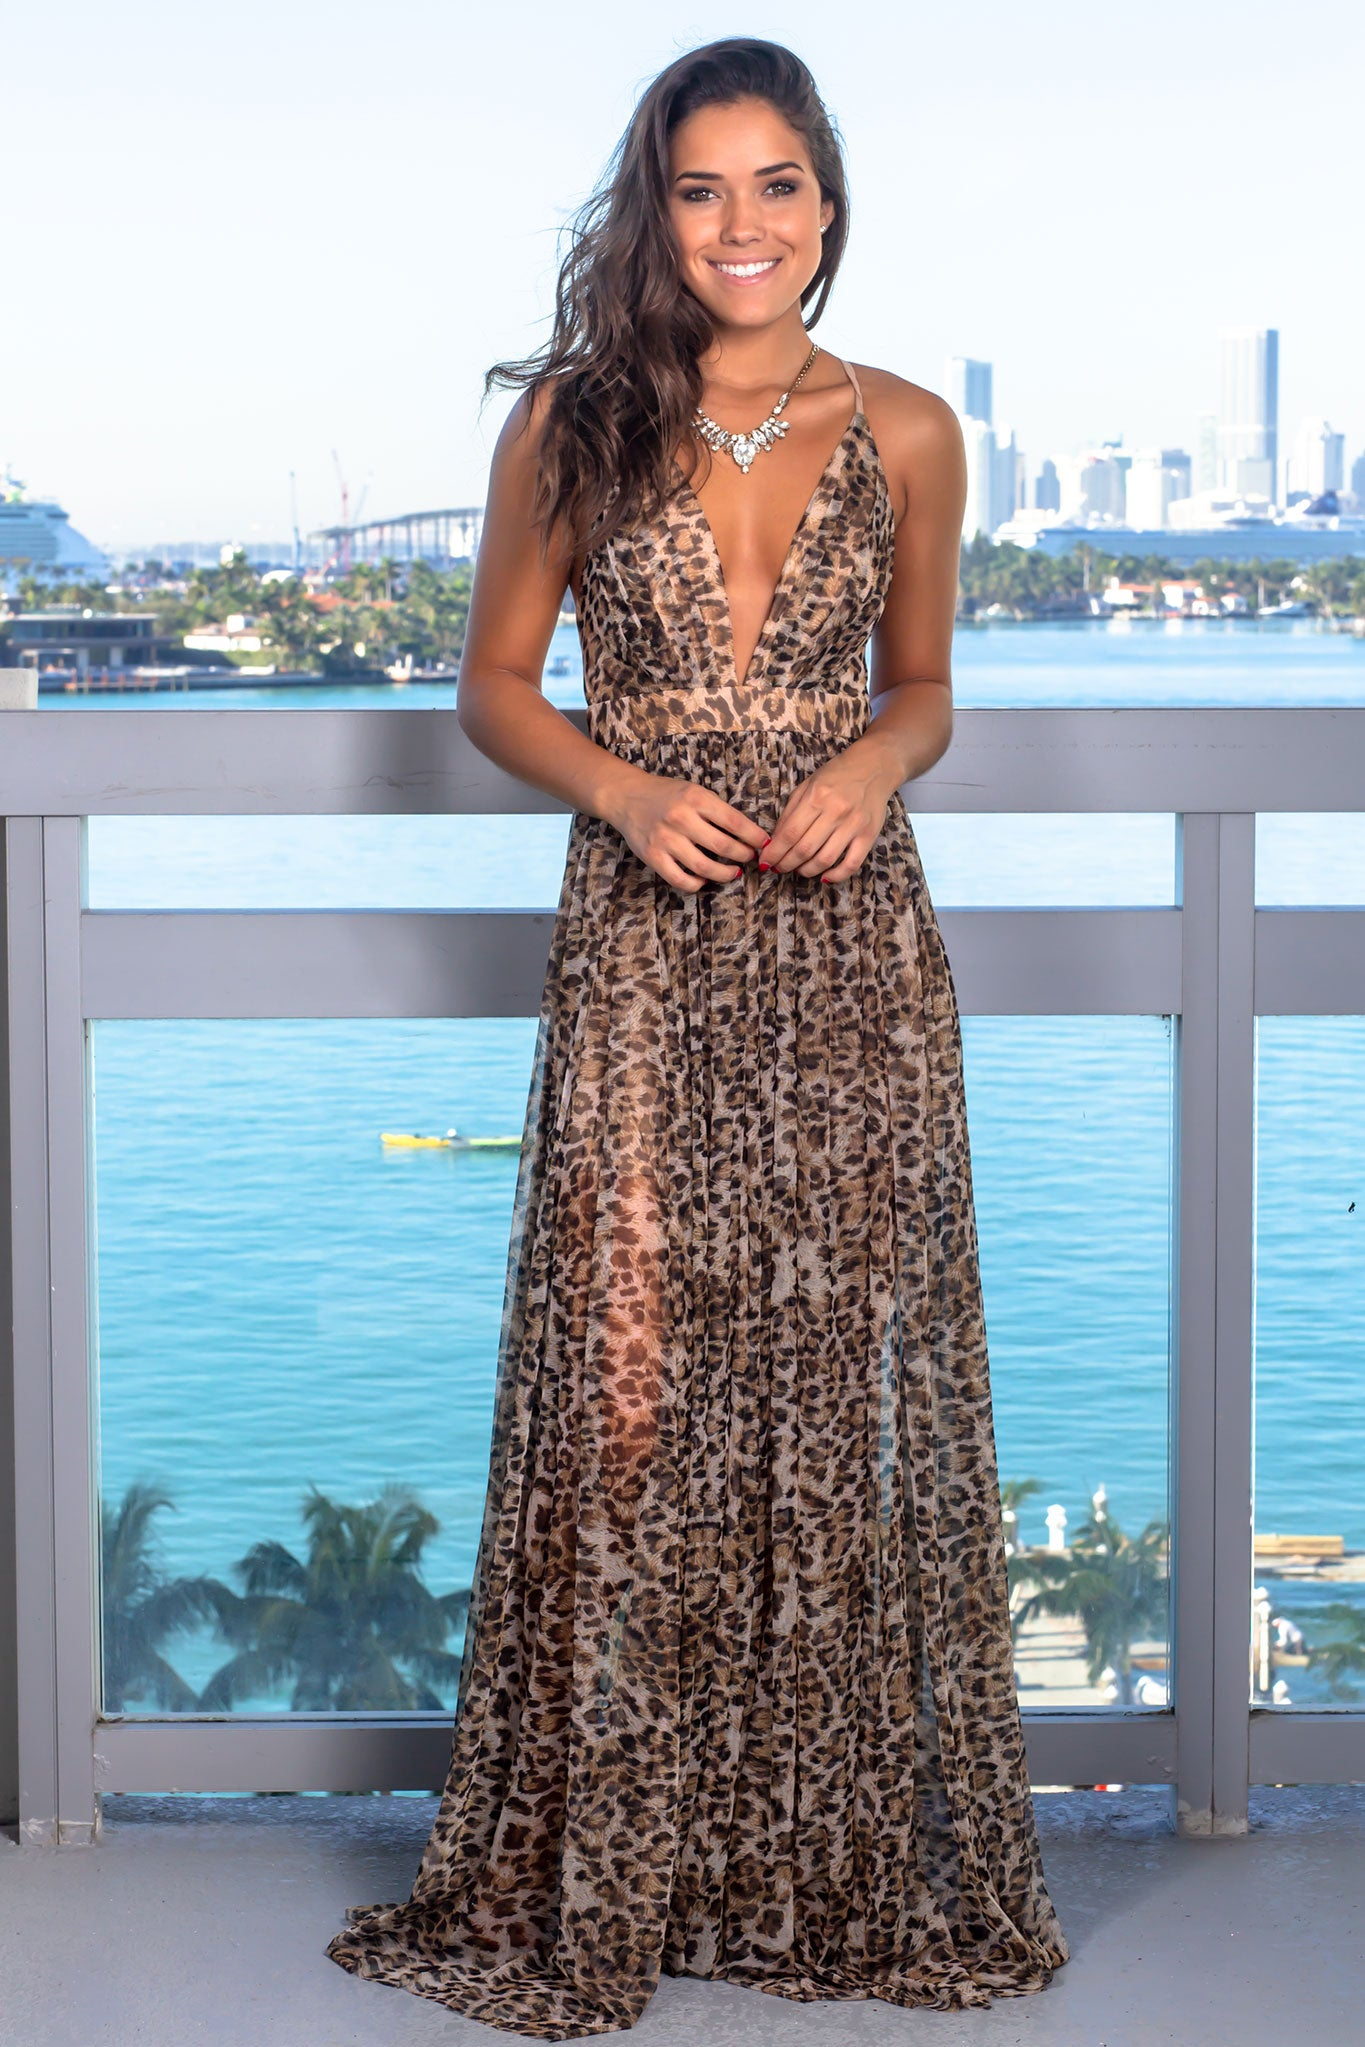 Beige Leopard Print Maxi Dress